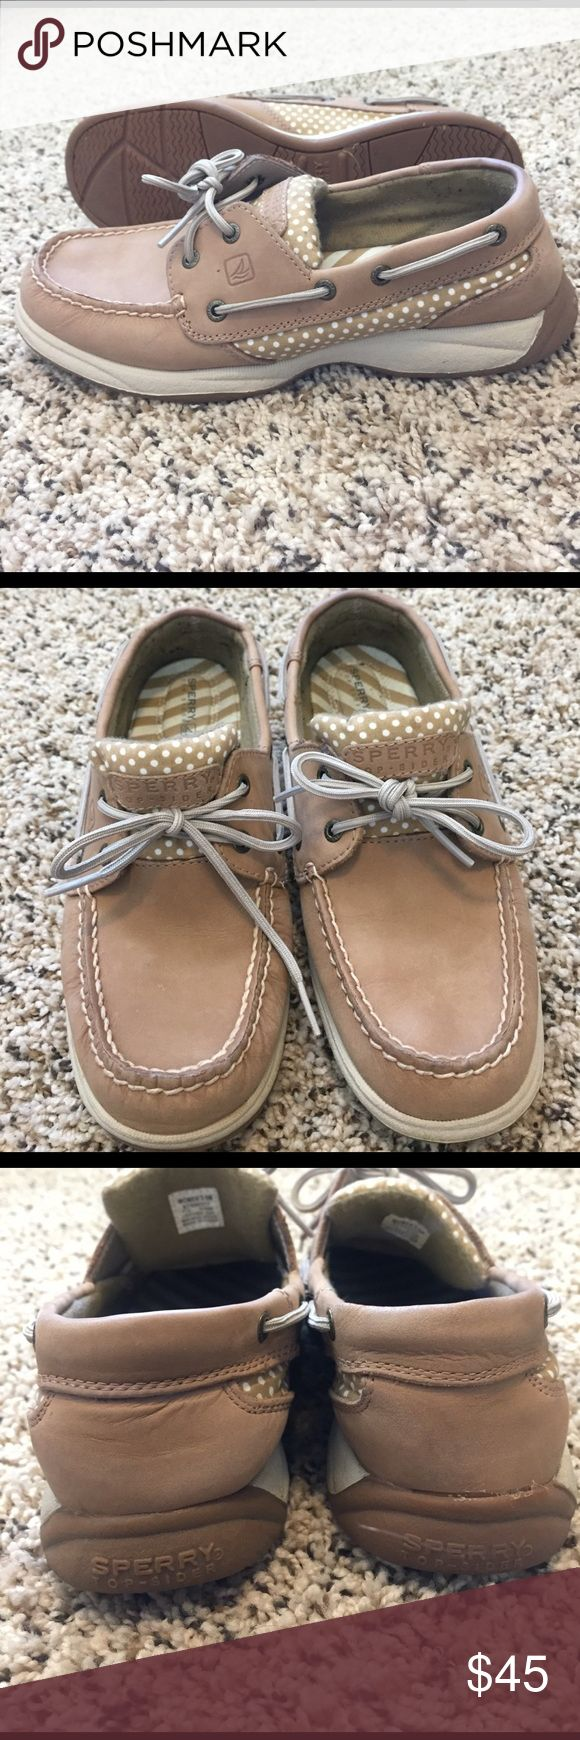 Polka Dot Sperry Top Siders - Gently Used Small discoloration on L shoe tab (shown in close up pic), used but in excellent condition, only worn a handful of times. Price is firm. Sperry Top-Sider Shoes Flats & Loafers